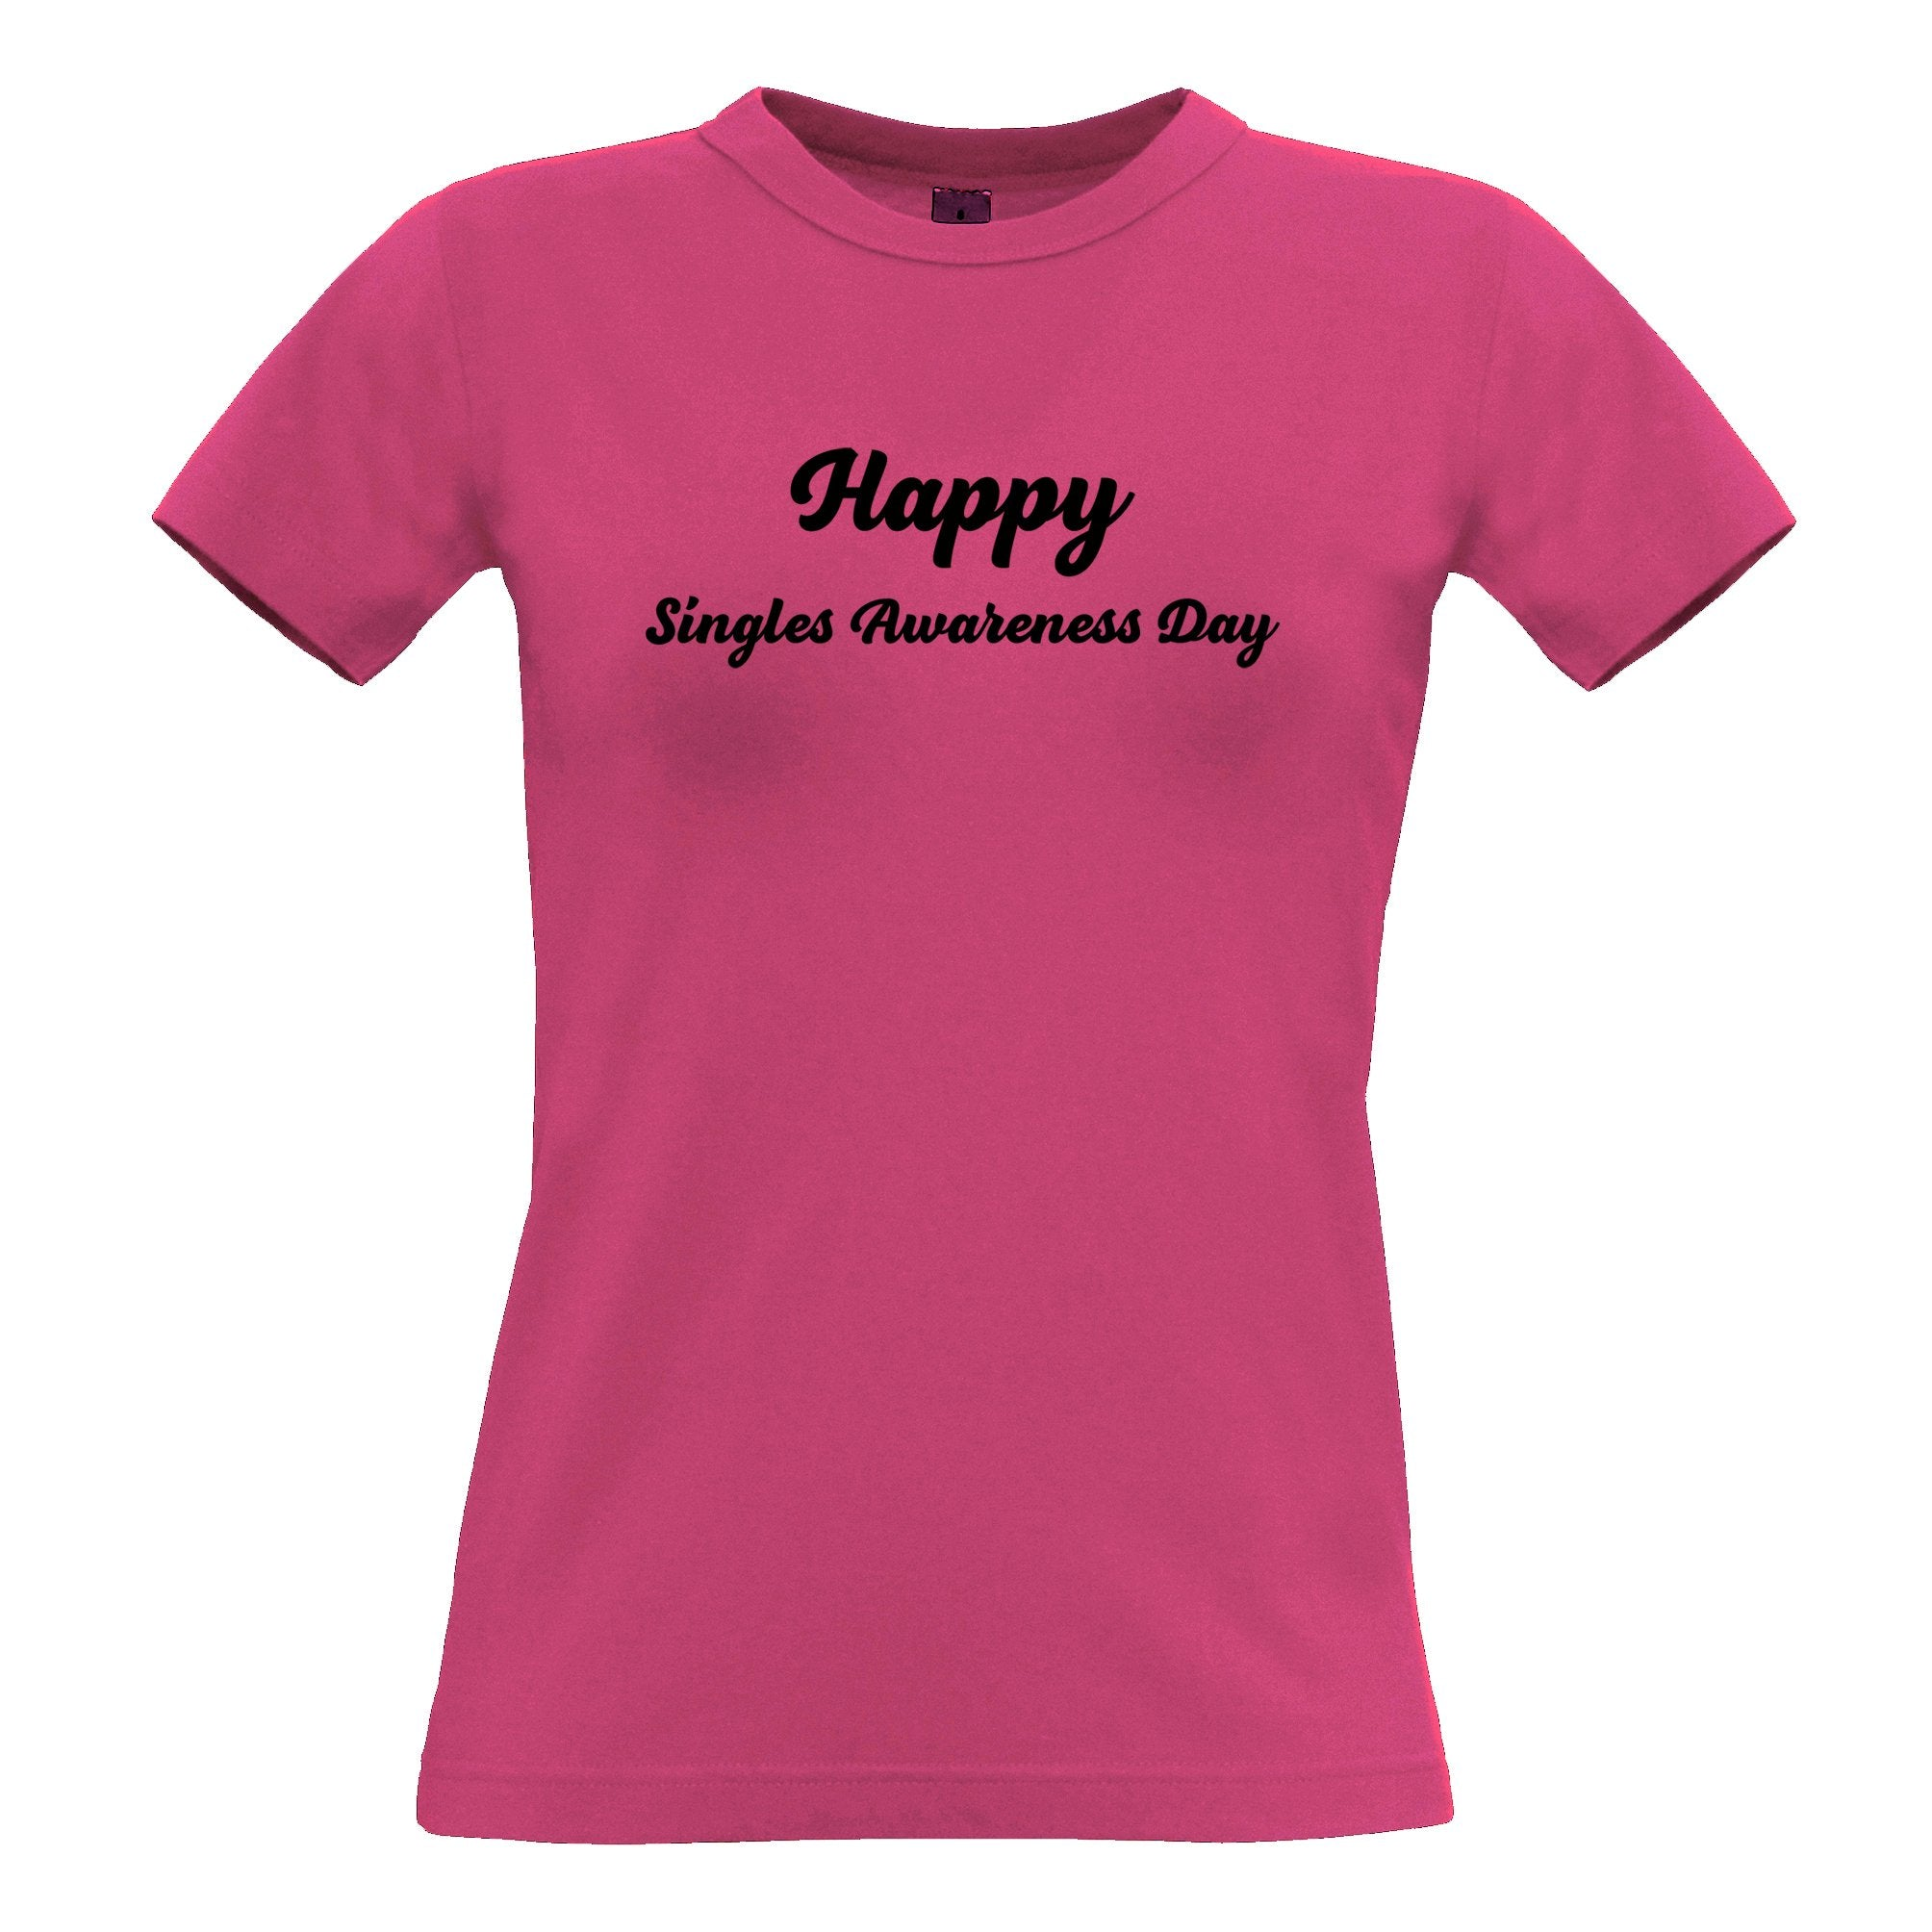 Joke Valentine's Day Womens TShirt Singles Awareness Day